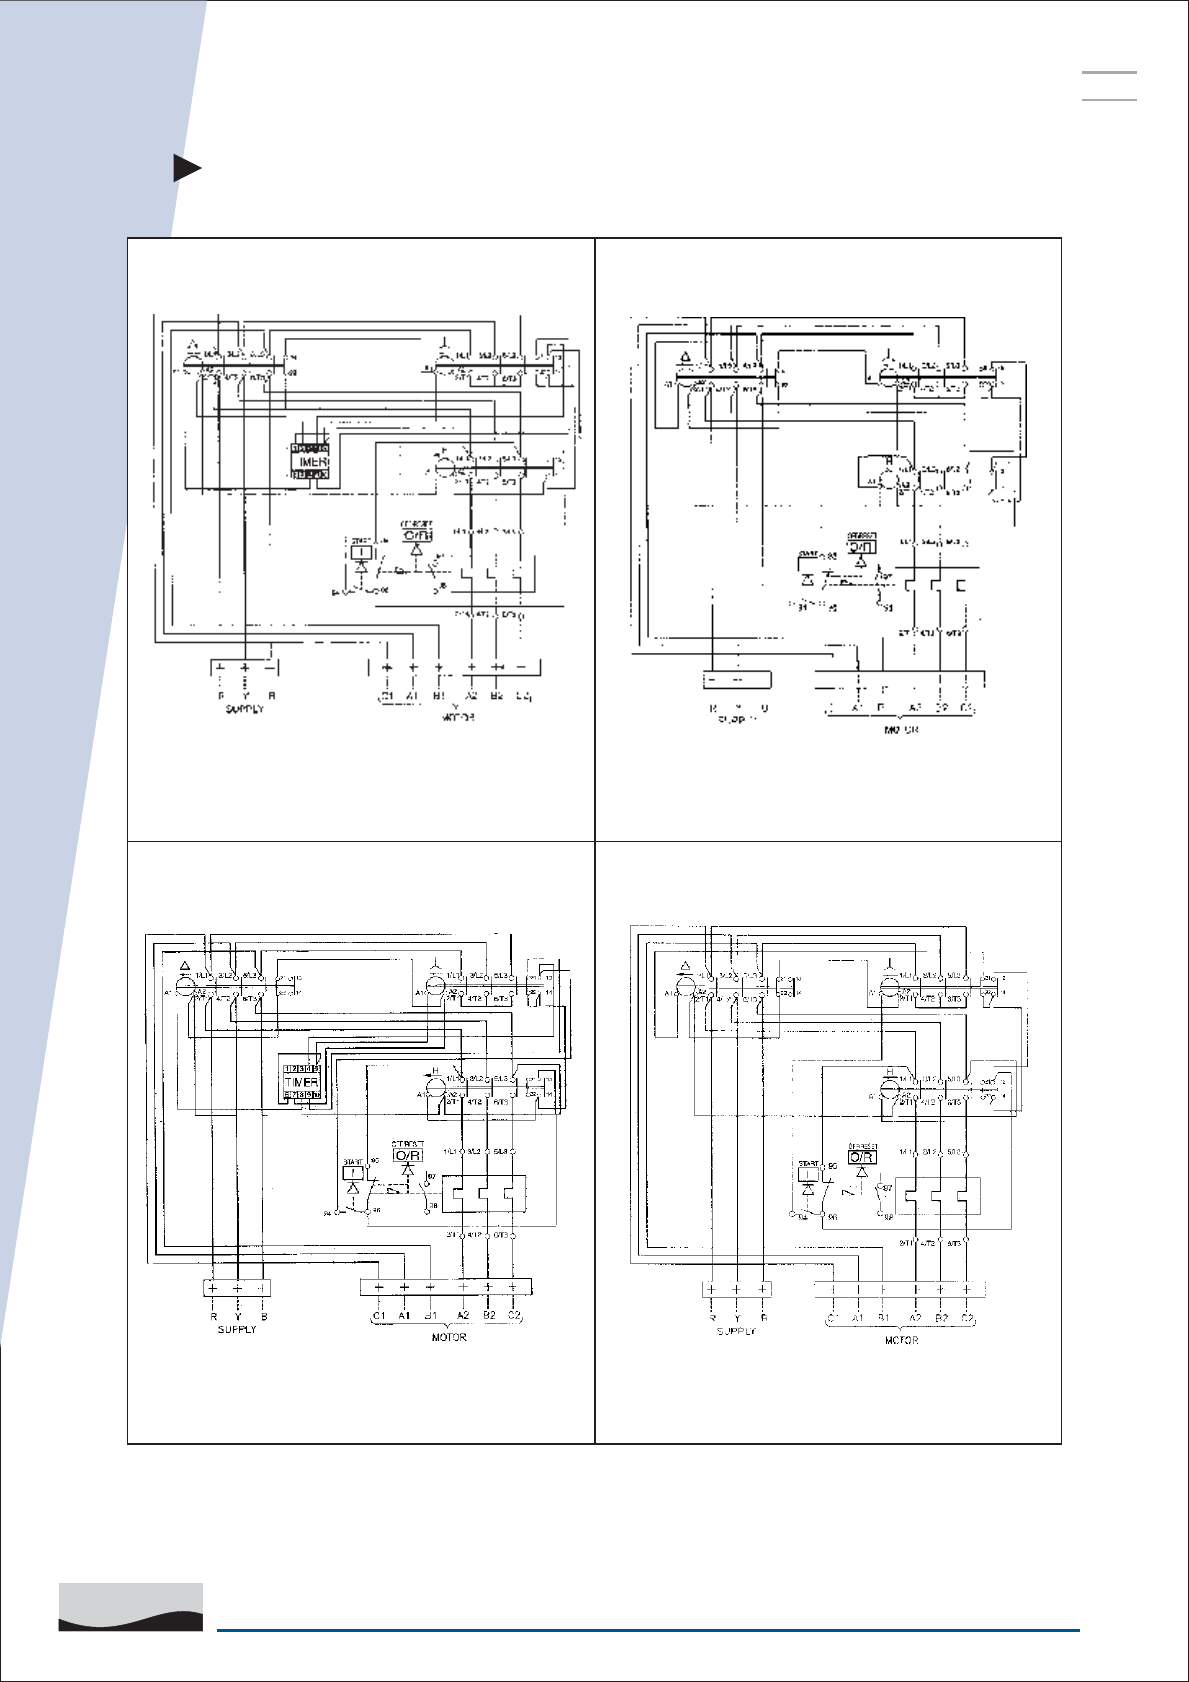 Installation Ing Troublesho Side By Msd2356aea Installation Ing Troubleshooting Starters Overload Relays